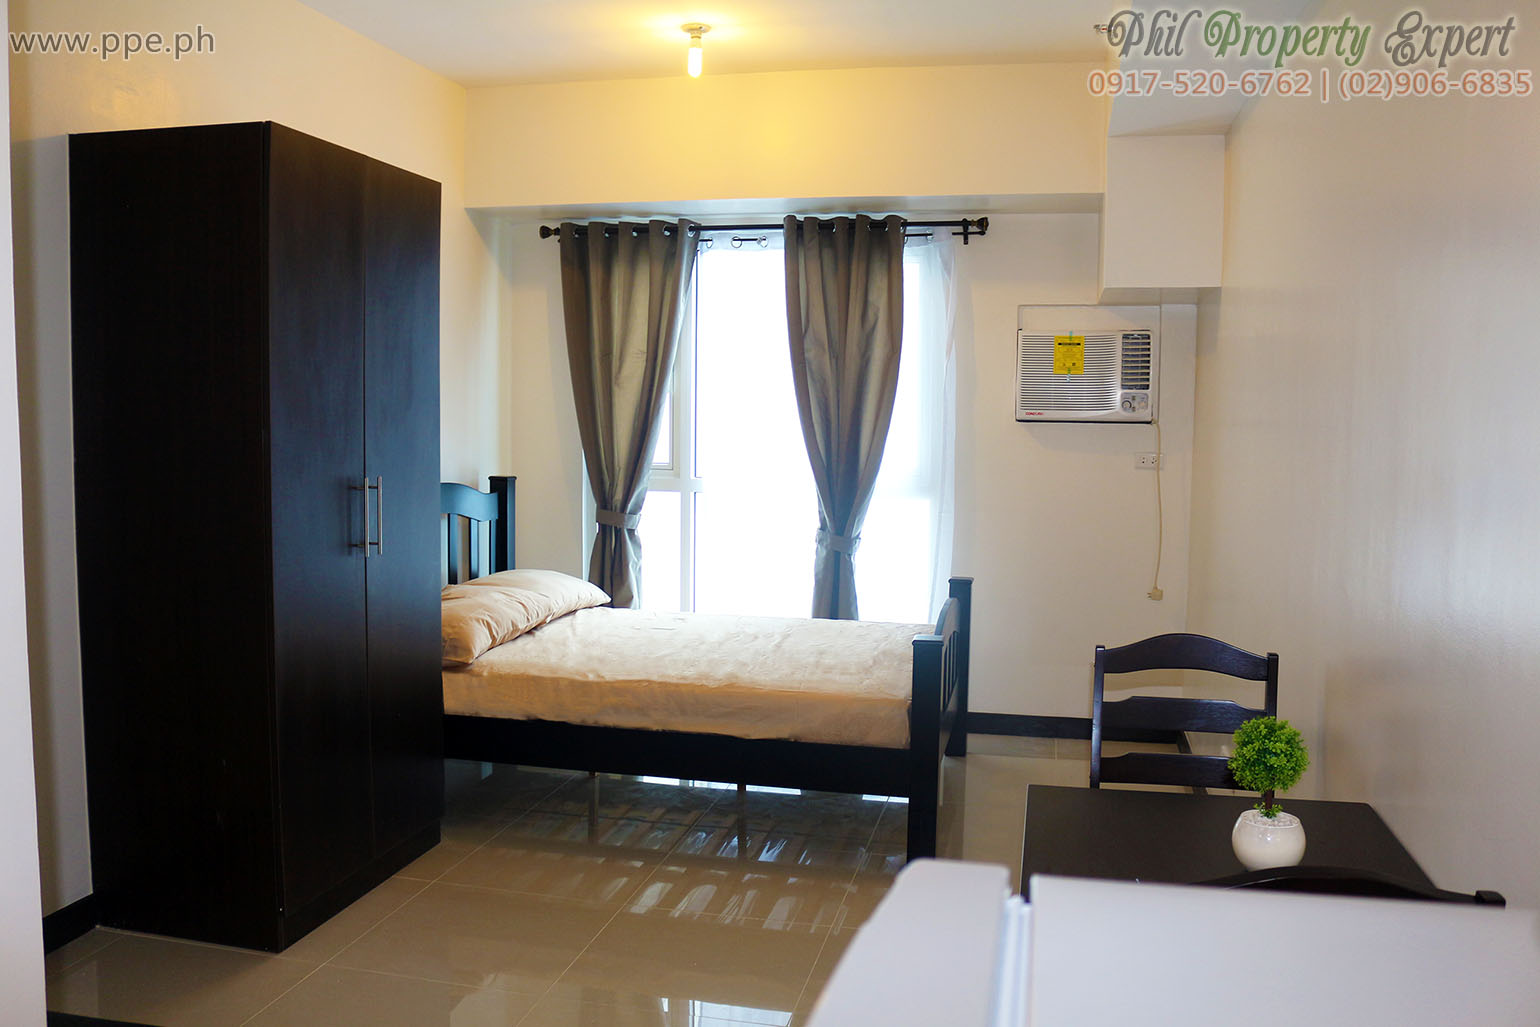 Rent Mandaluyong Apartment Philippines